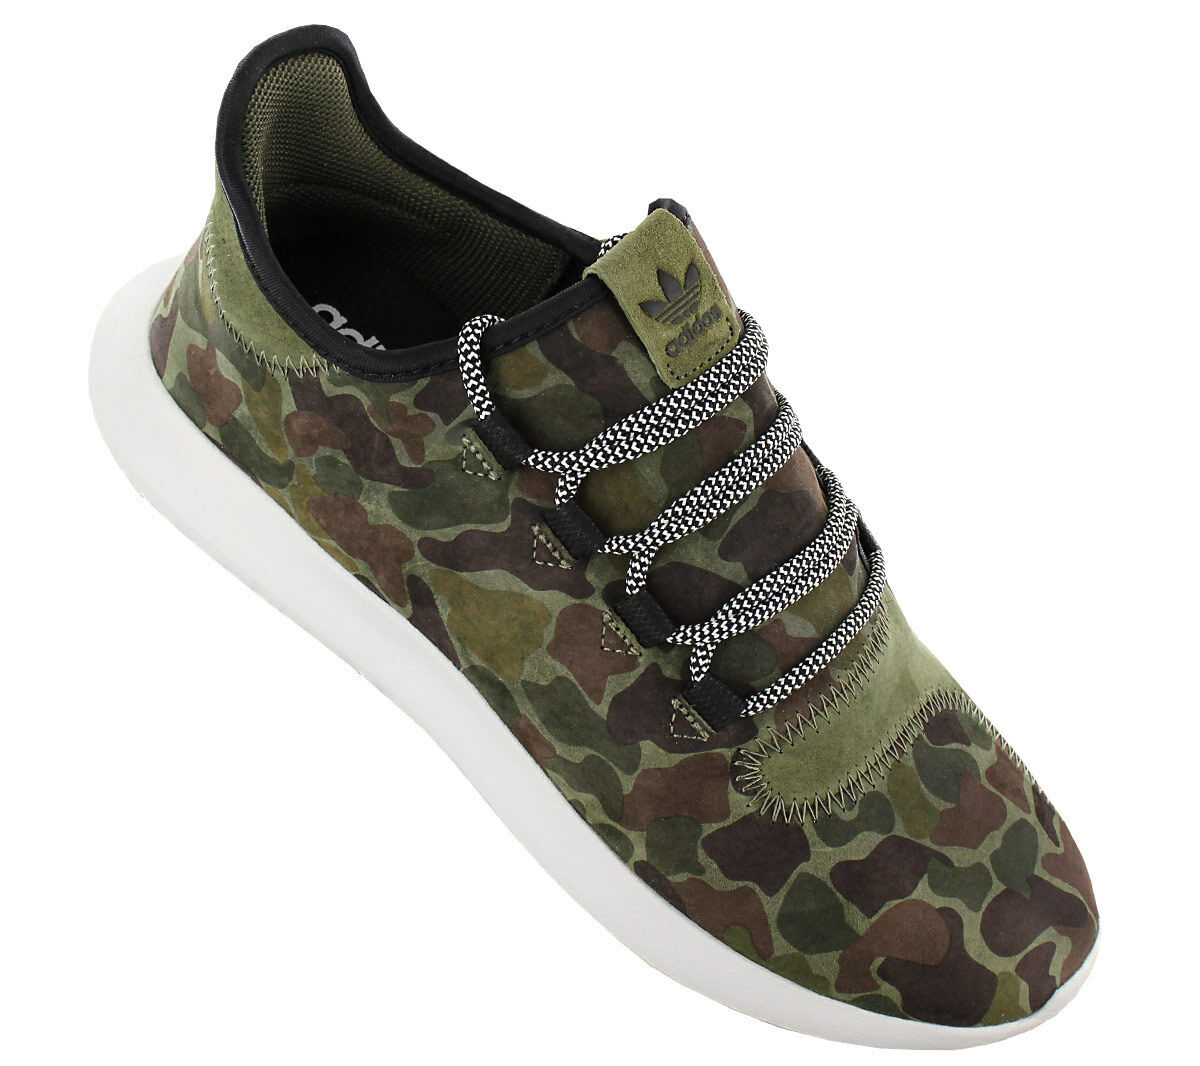 NEW adidas Originals Tubular Shadow BB8818 Men''s shoes Trainers Sneakers SALE